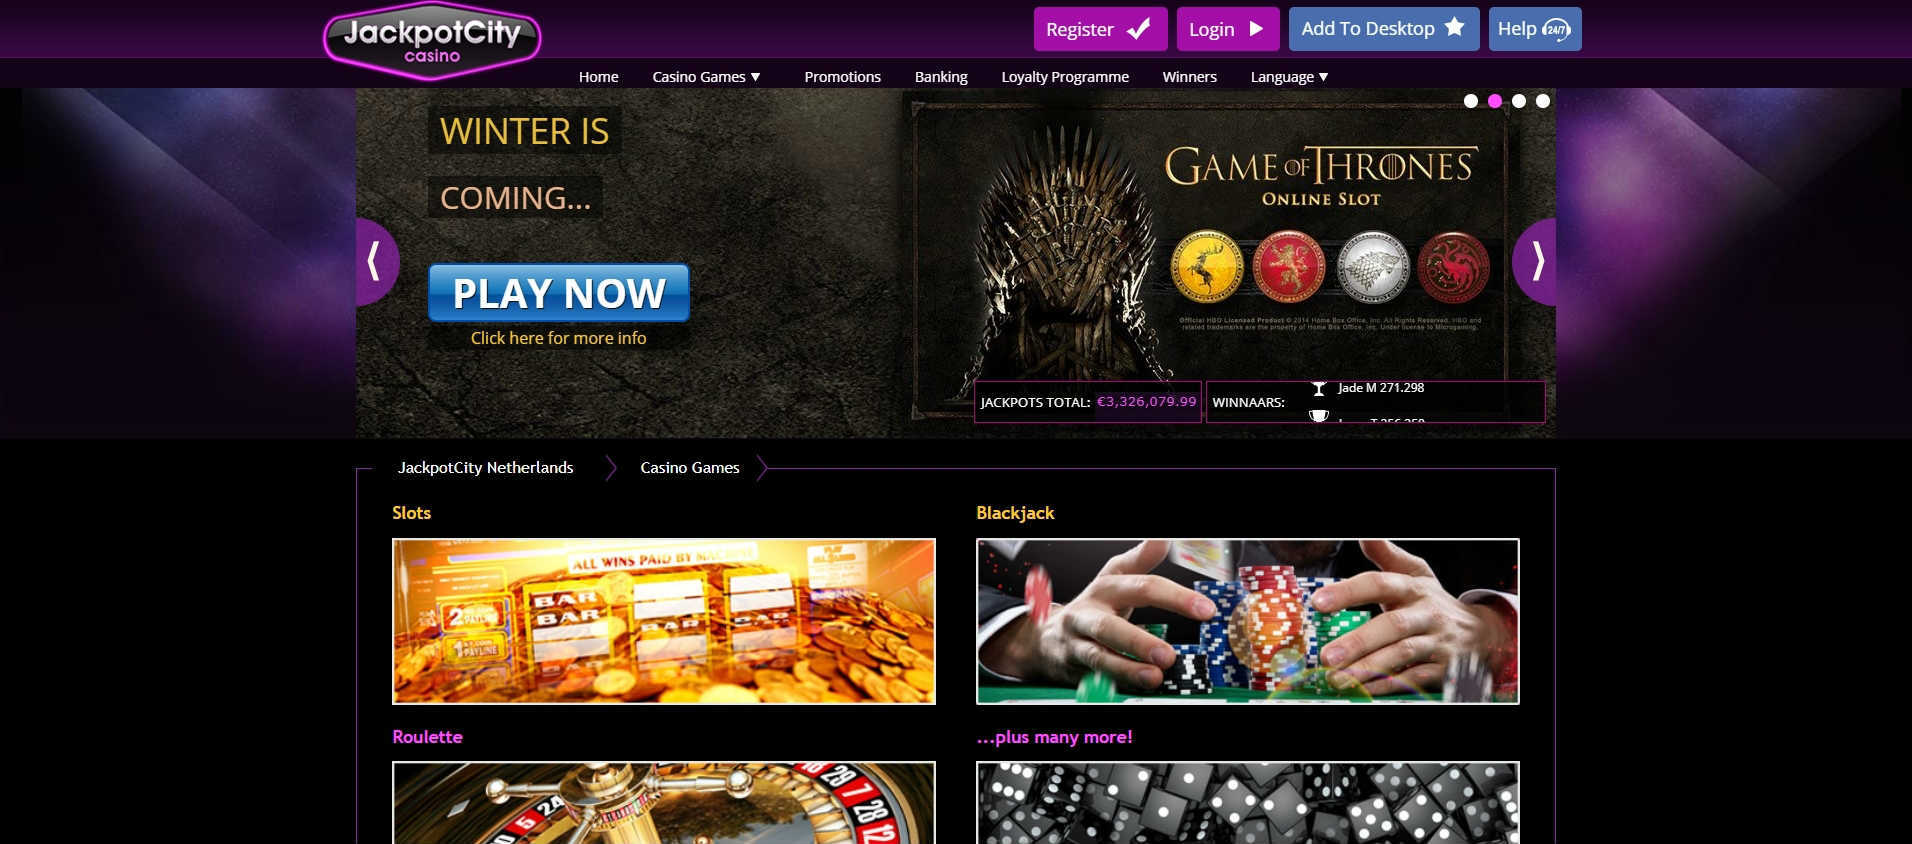 Jackpot City Casino Online Casino Games